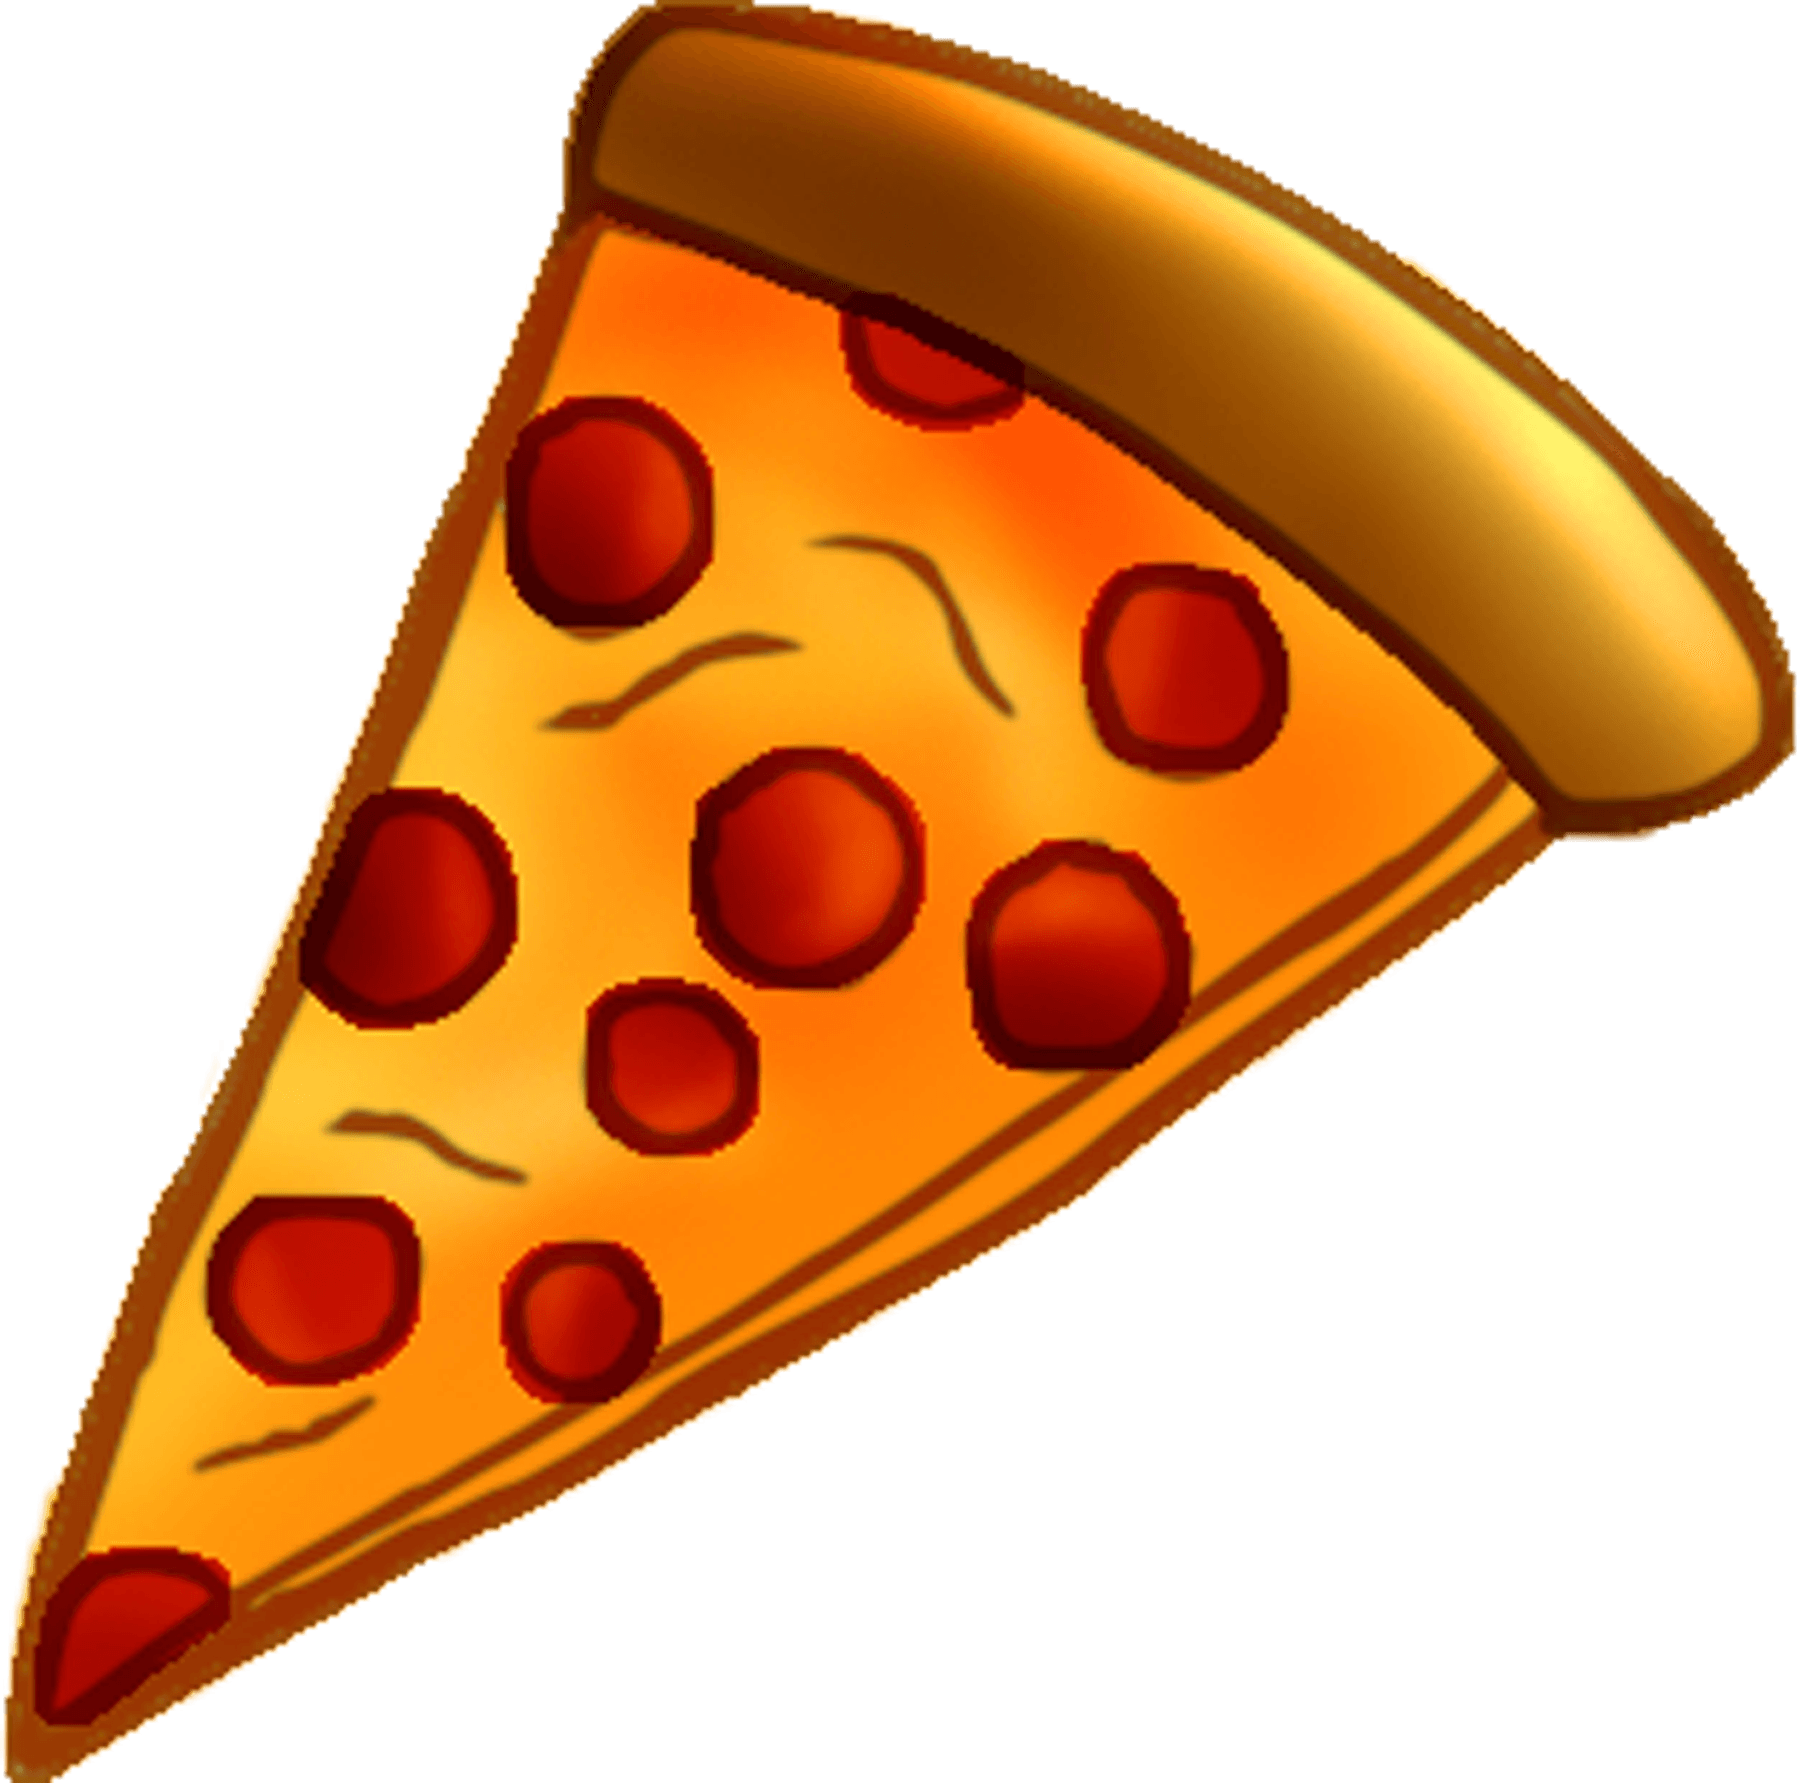 Toppings at getdrawings com. Money clipart pizza